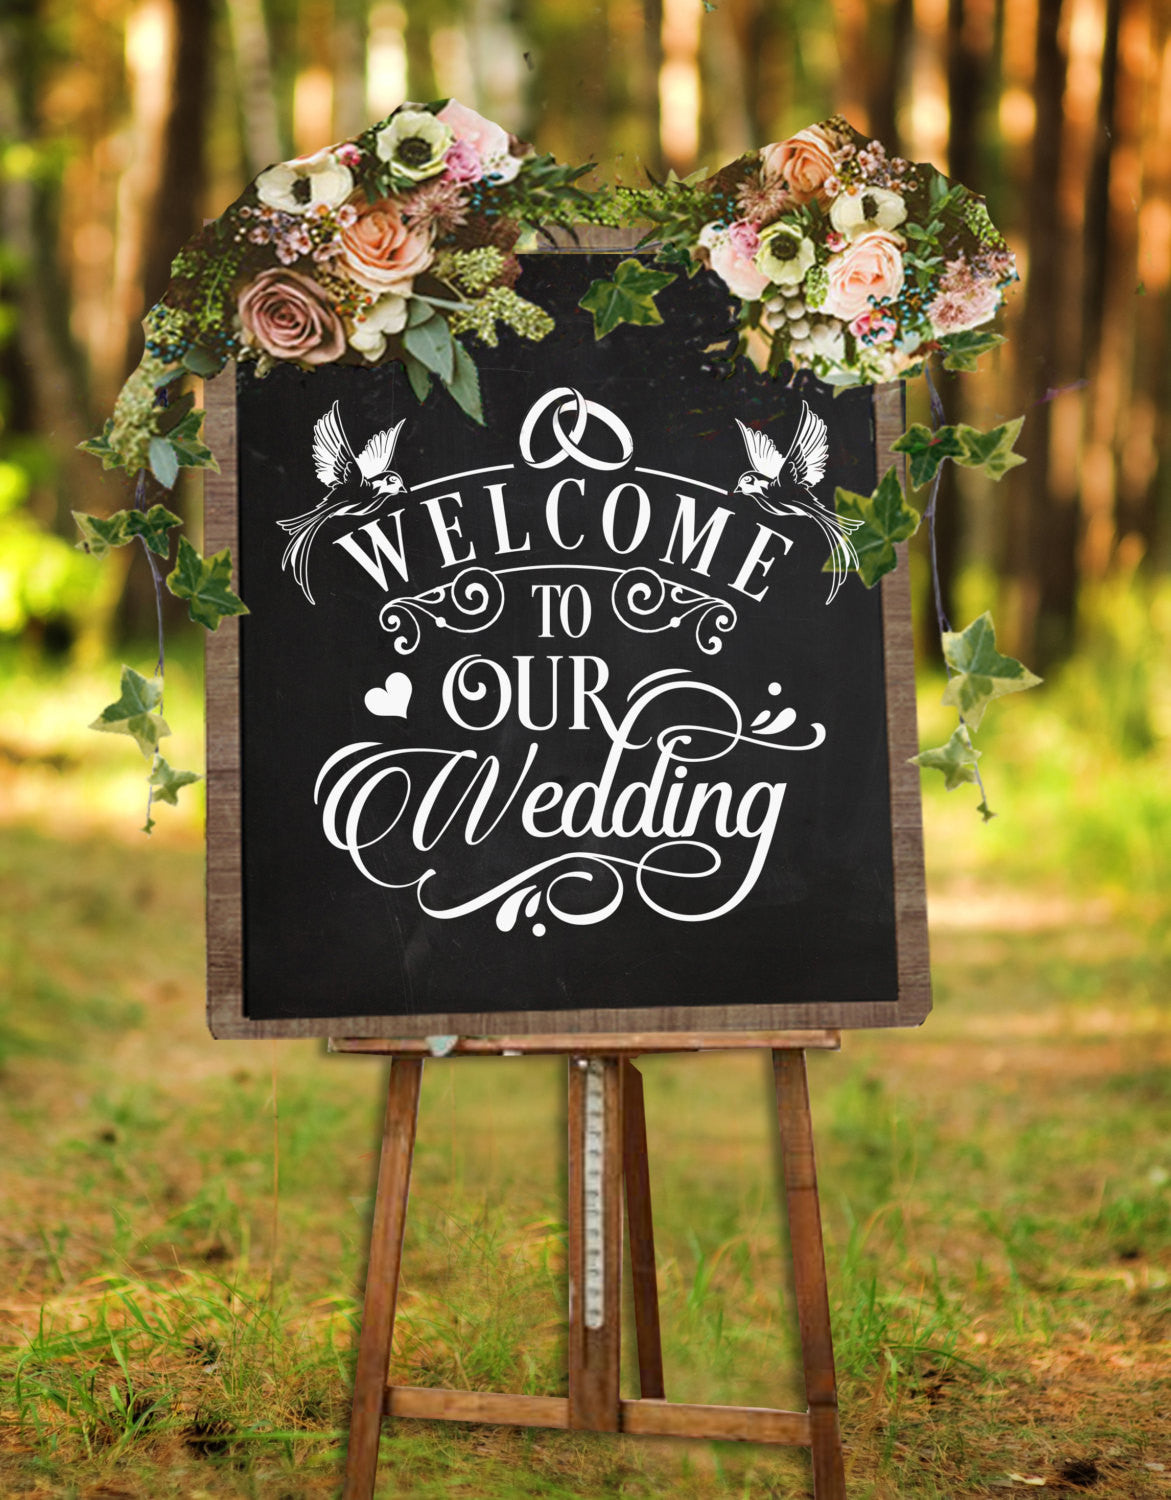 Welcome To Our Wedding Sign SVG File Cutting File Clipart